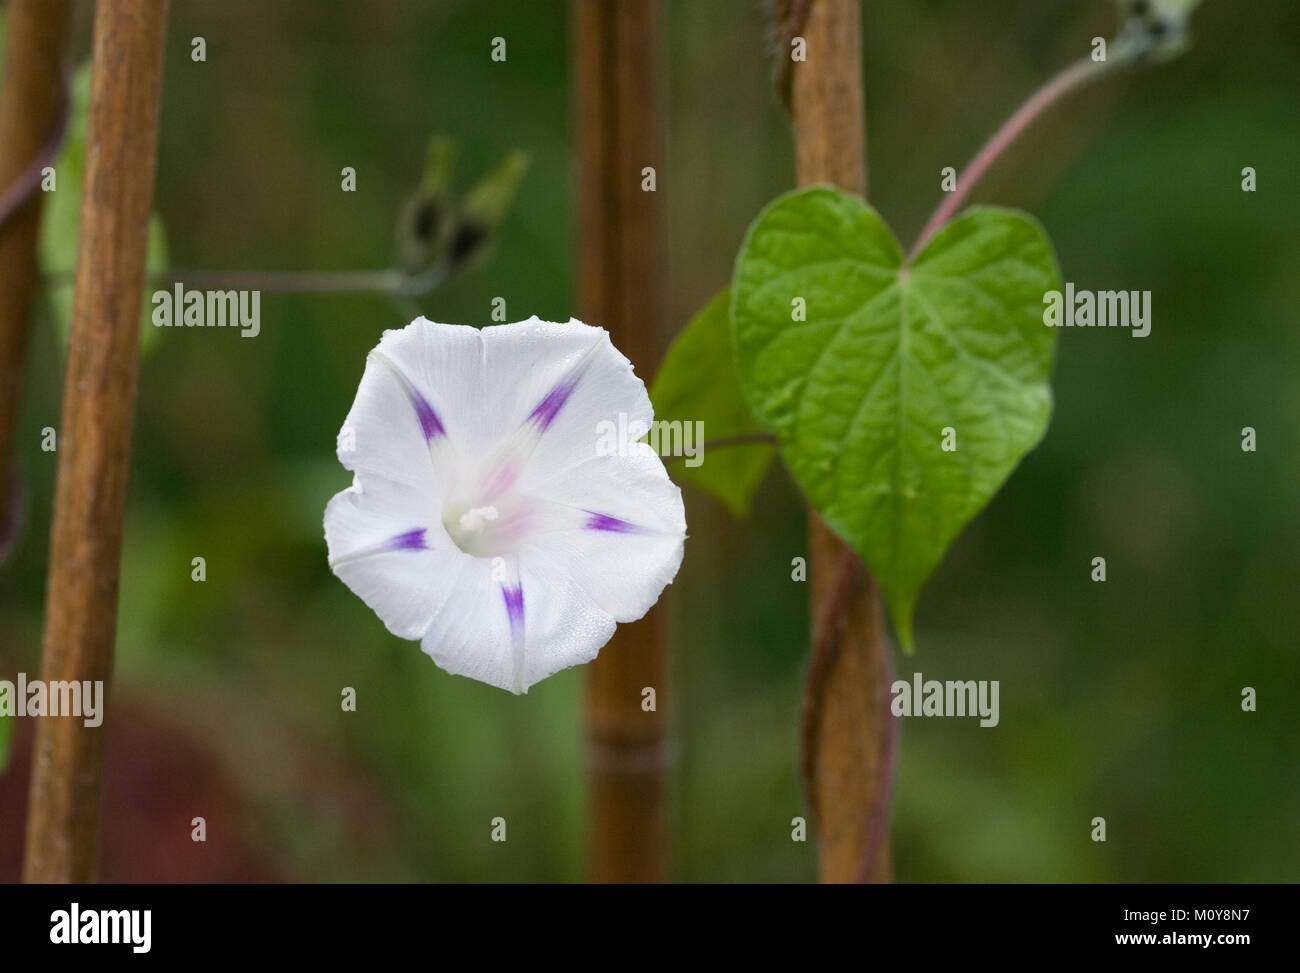 Ipomoea Milky Way Flower White Morning Glory Flower Stock Photo